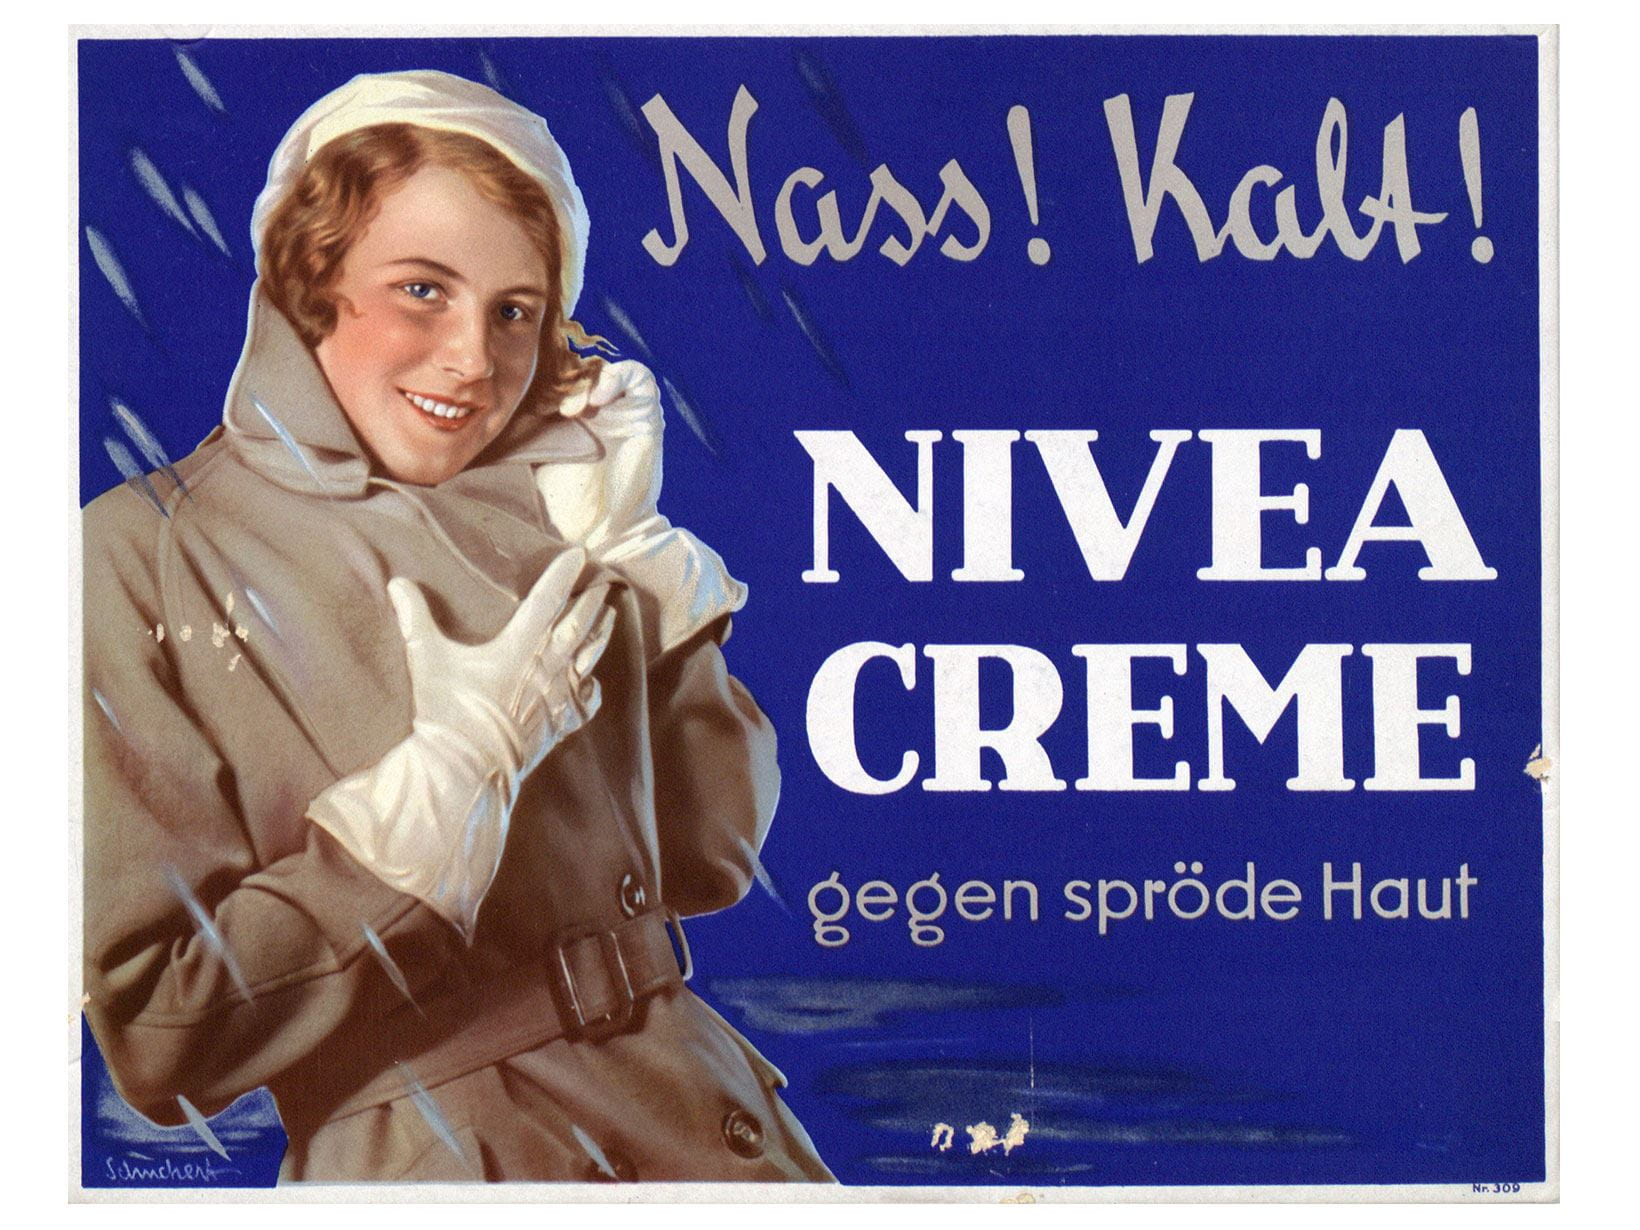 Even in wet and cold weather NIVEA protects against rough skin. Advertising poster from 1932